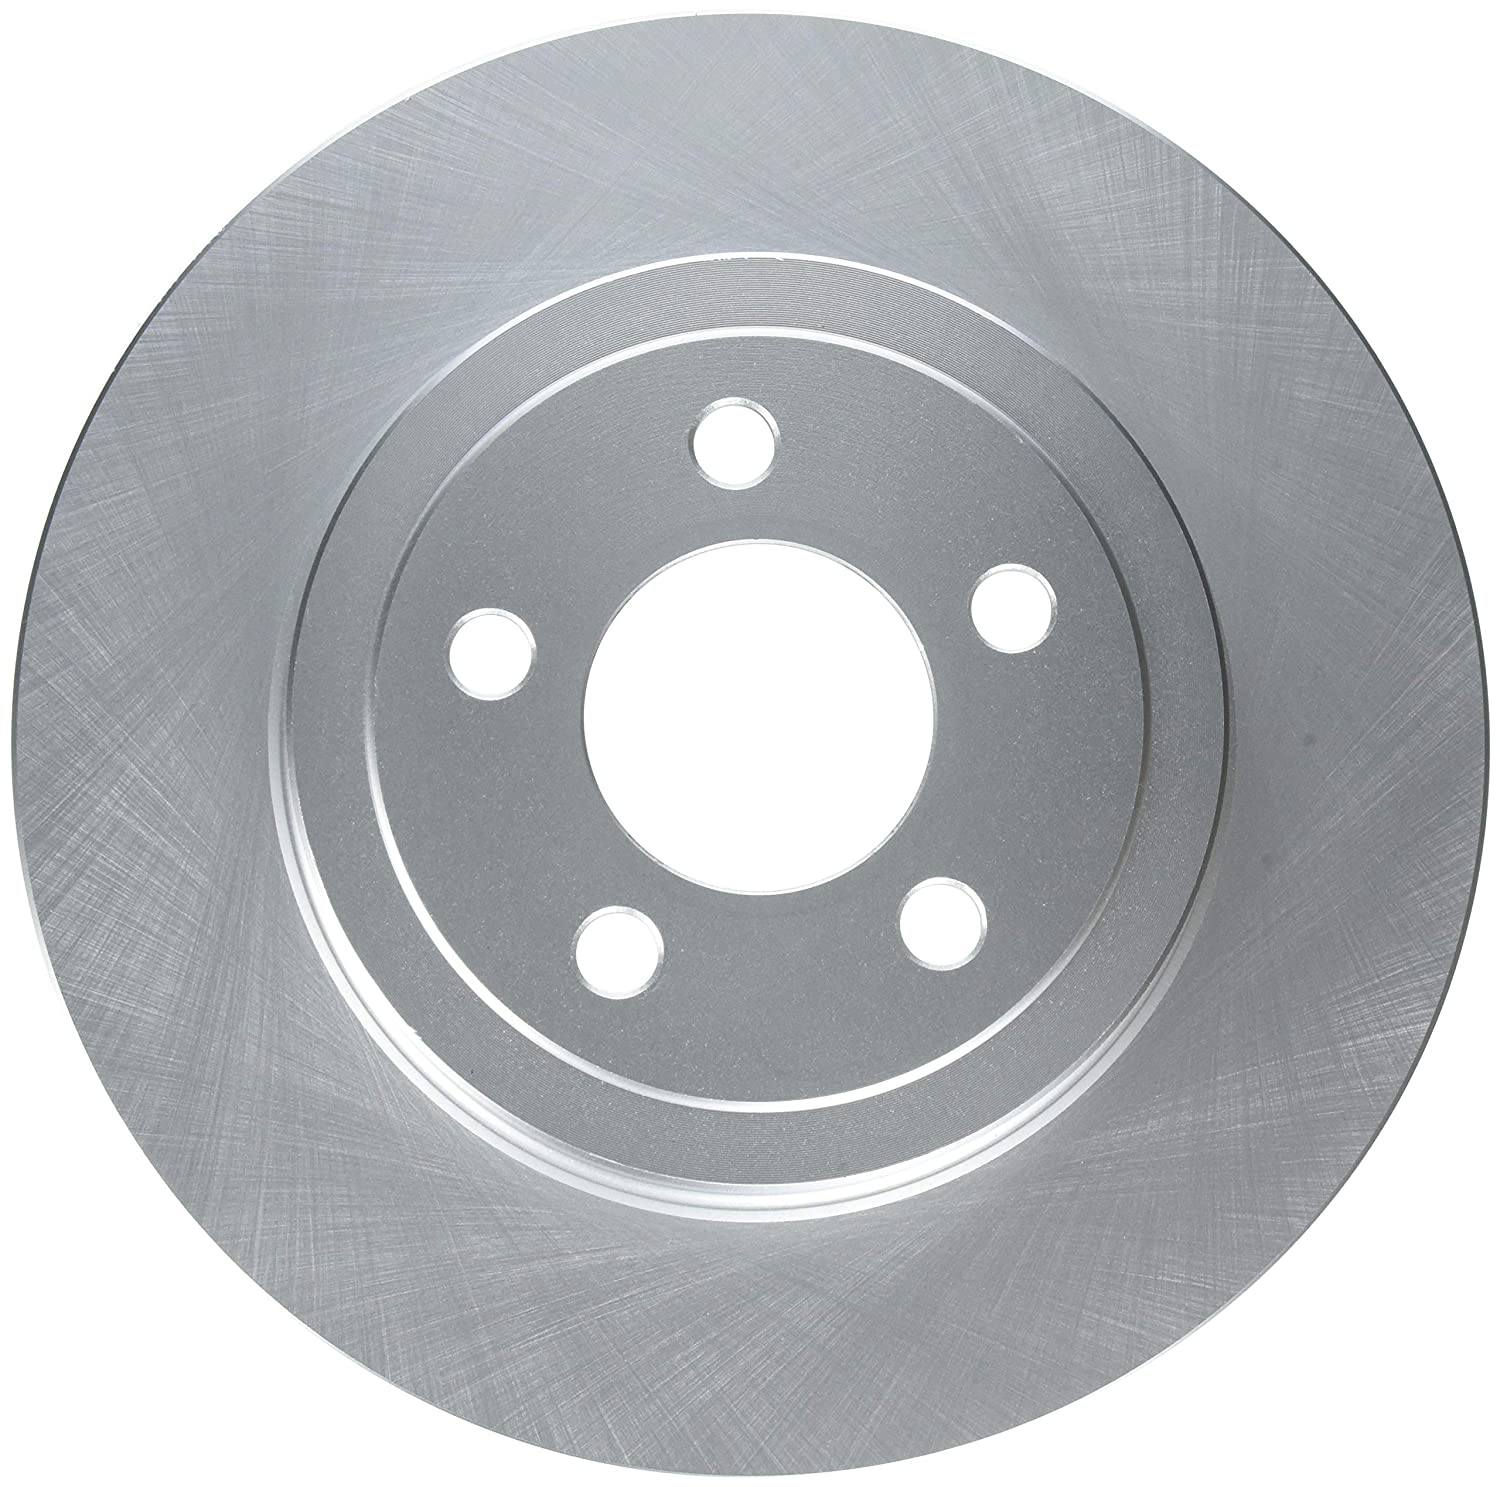 Raybestos 981040FZN Rust Prevention Technology Coated Rotor Brake